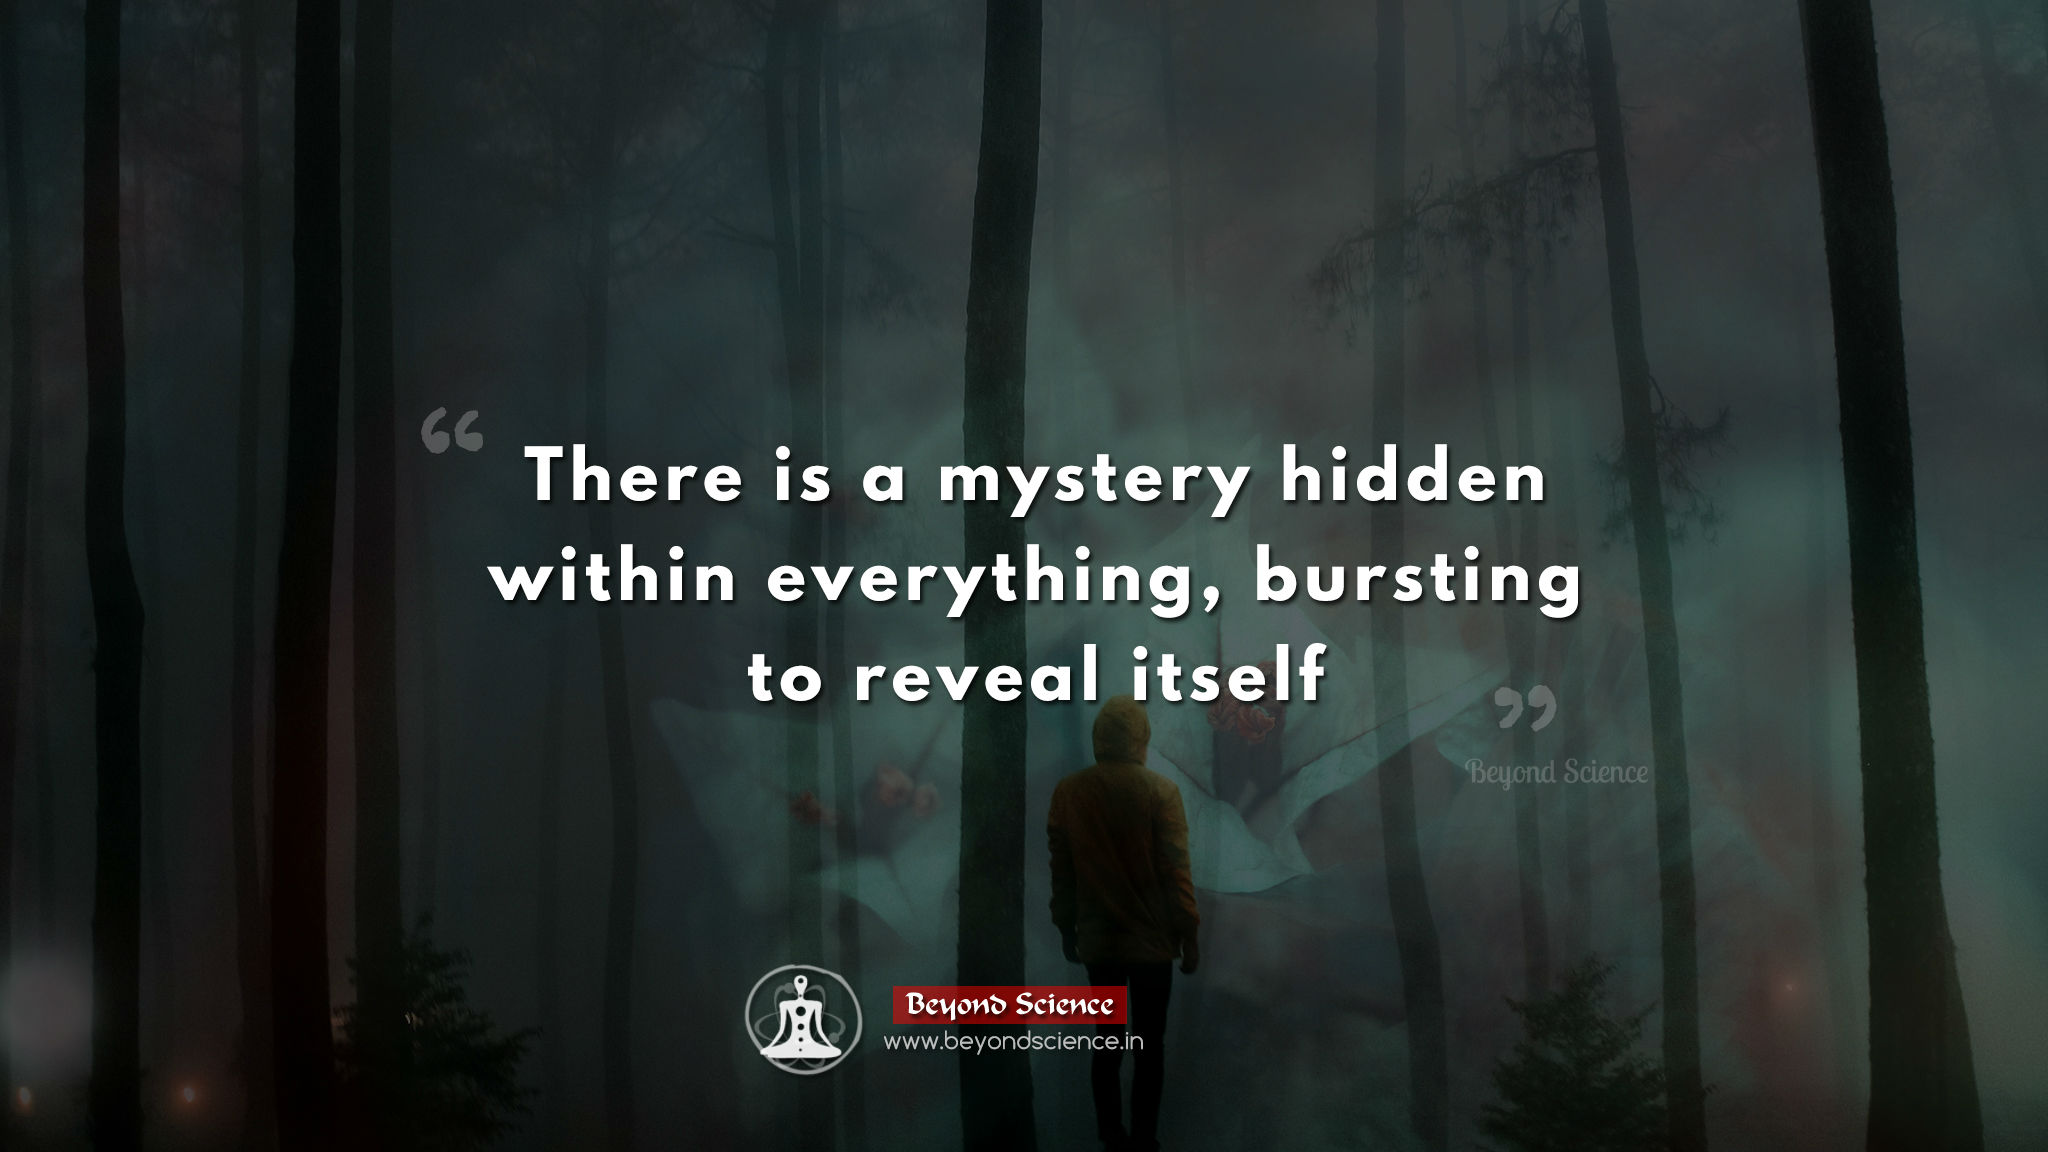 There is a mystery hidden within everything, bursting to reveal itself